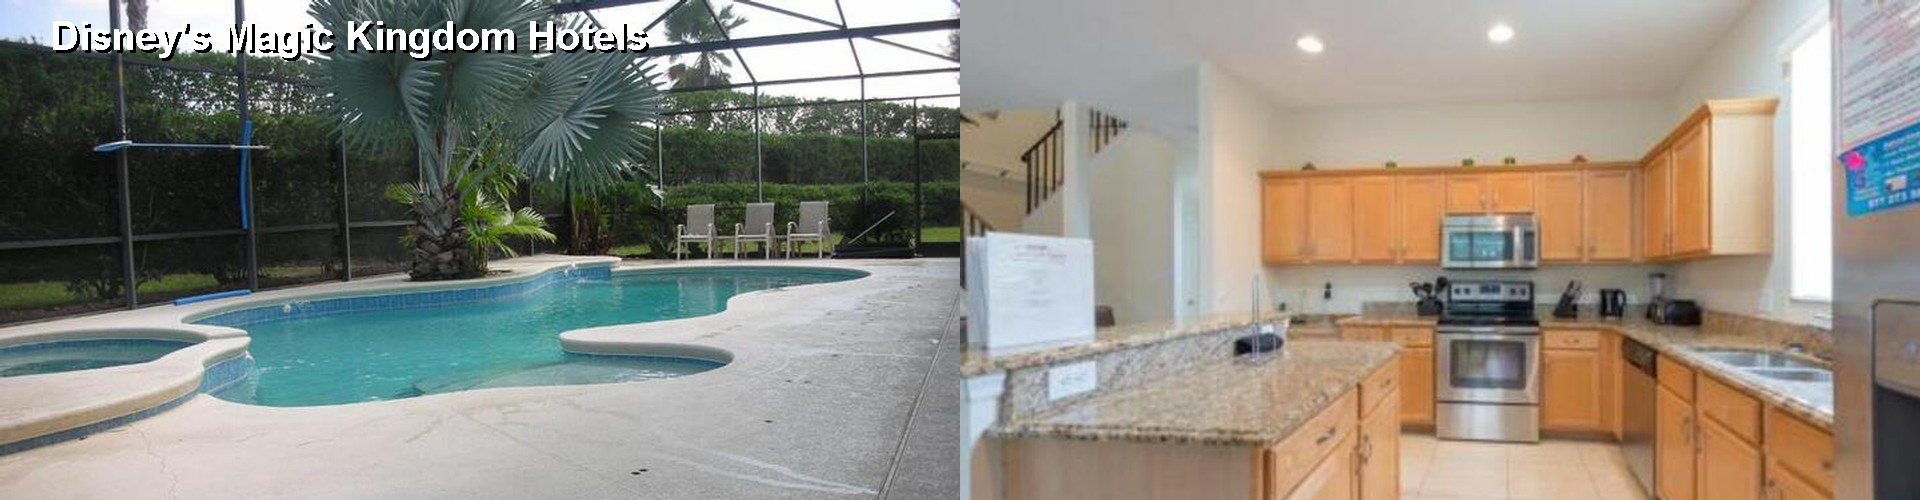 5 Best Hotels near Disney's Magic Kingdom